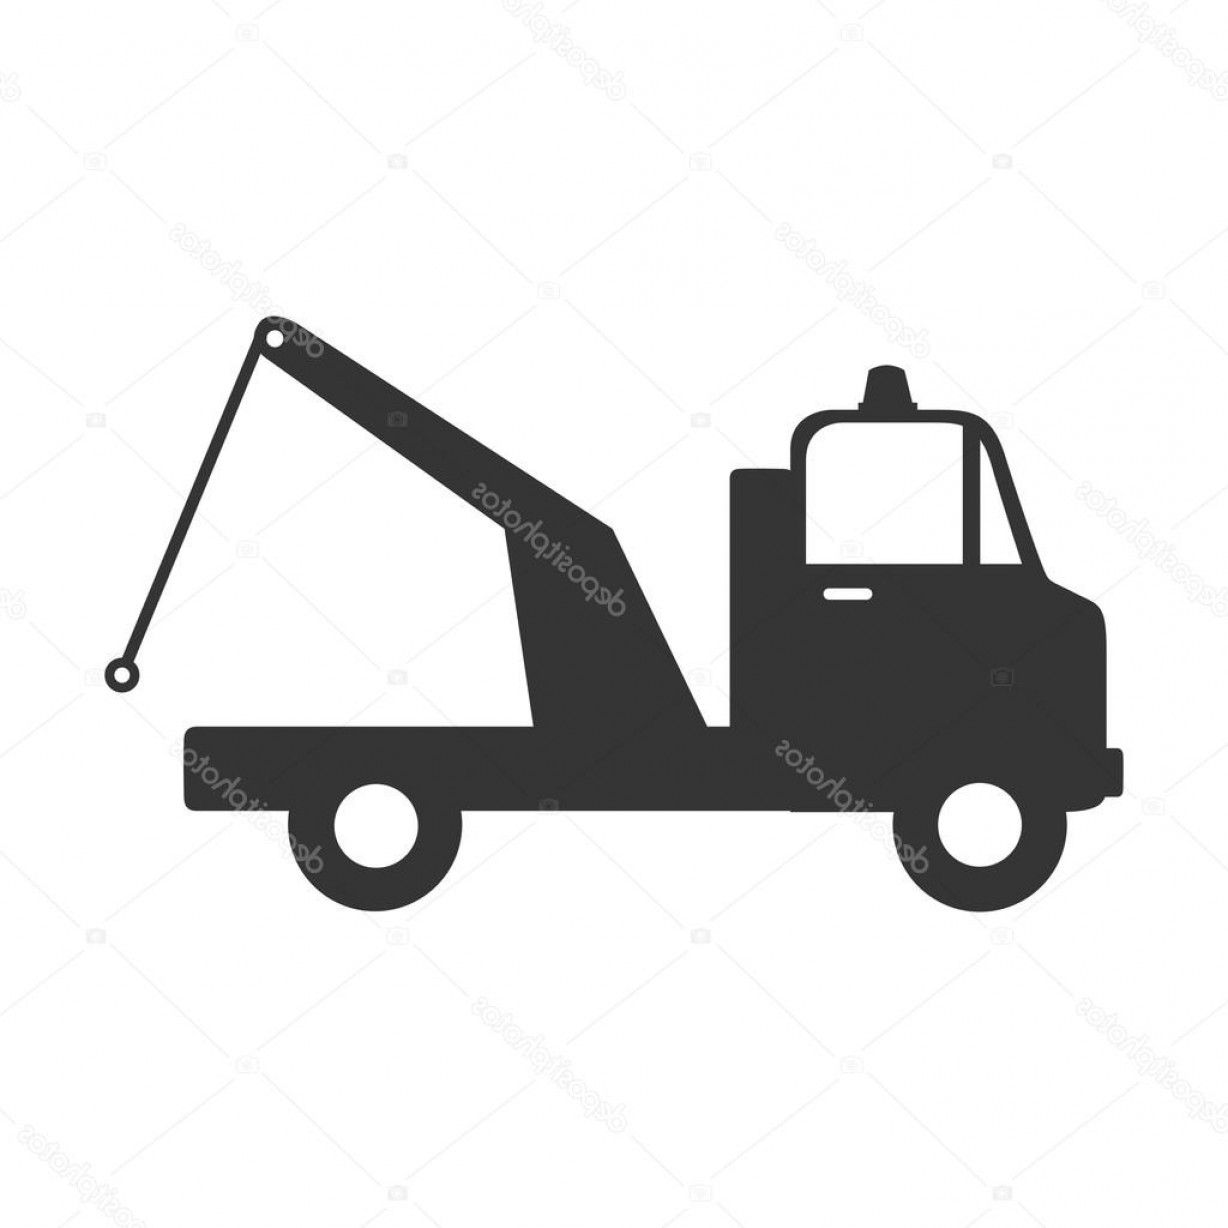 Towing Truck Hook Vector: Stock Illustration Cargo Truck Crane Icon Vector